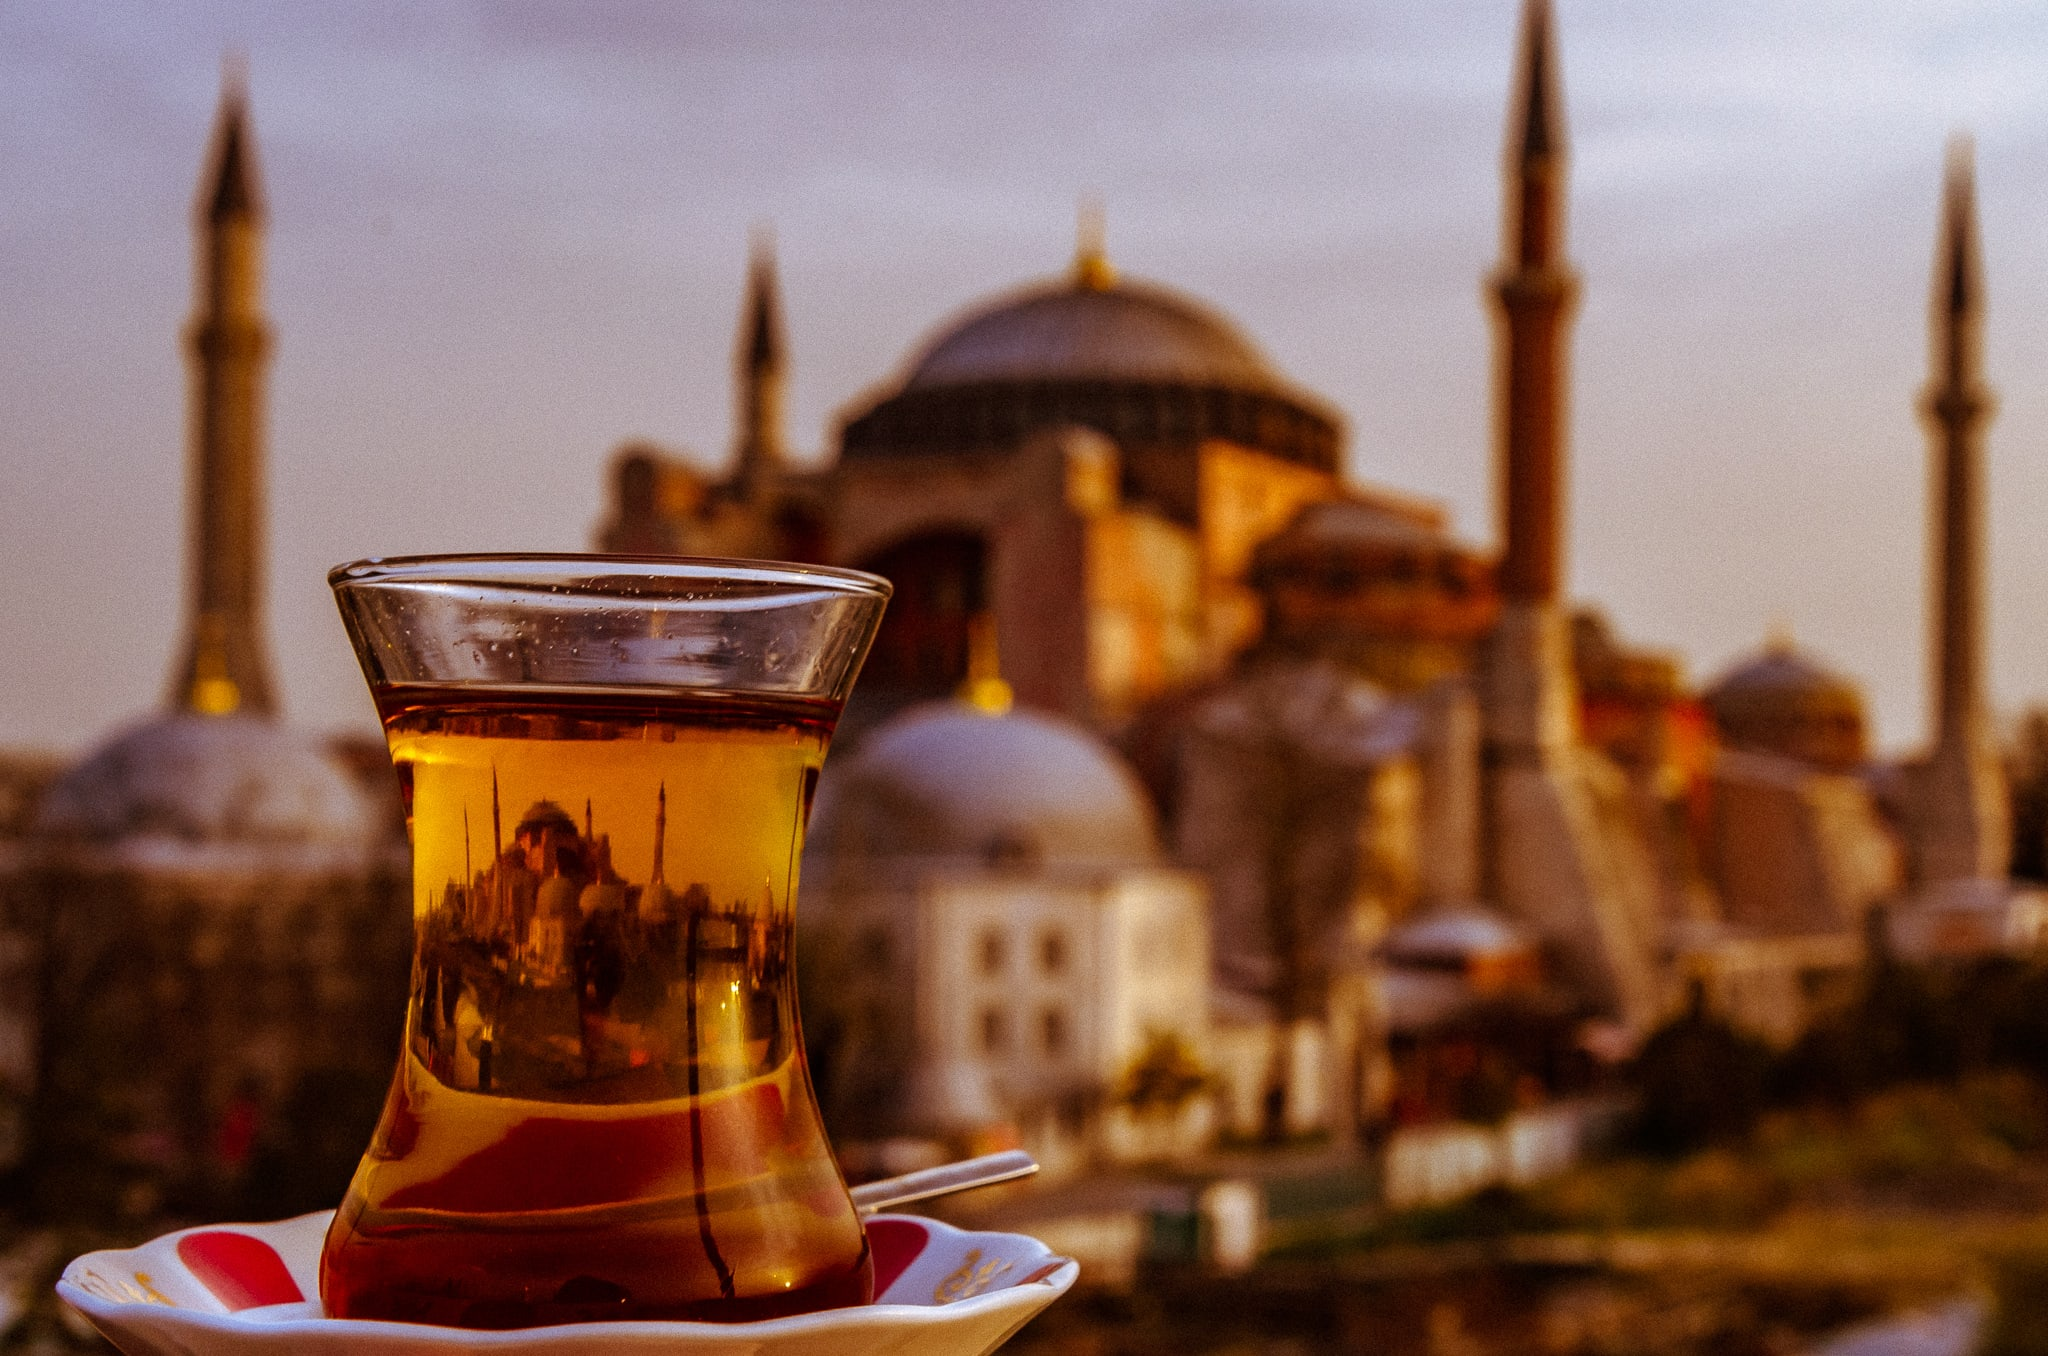 Turkish tea with a view of the Hagia Sofia #hagiasophia #istanbul #reflectionphoto